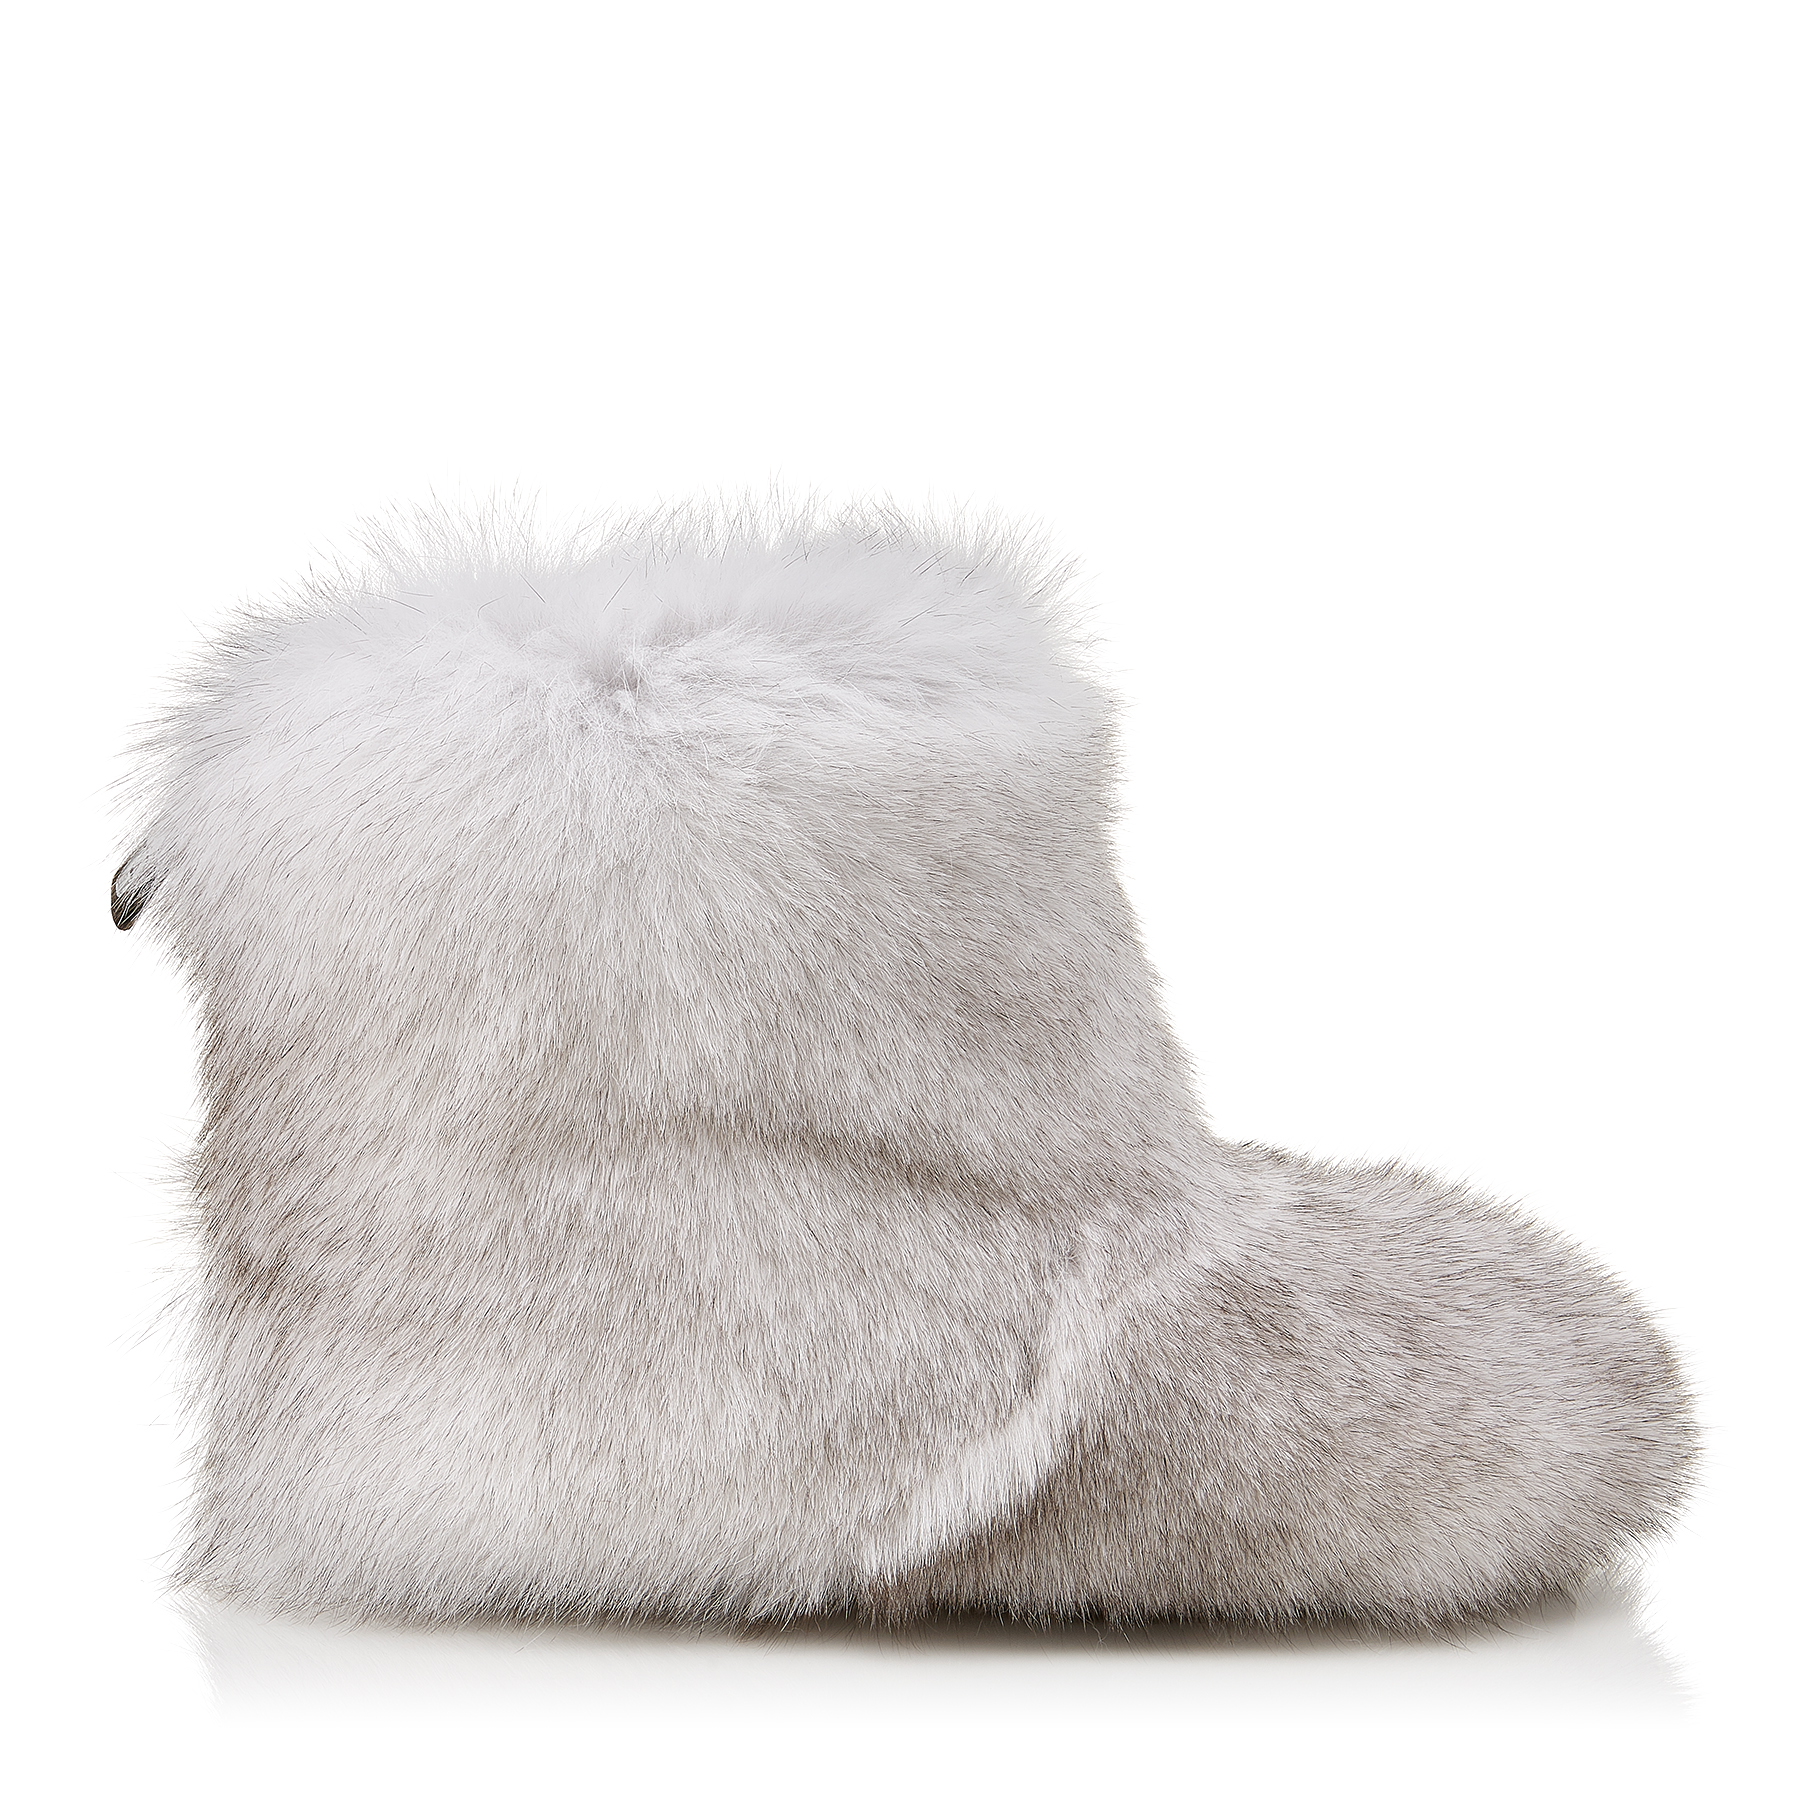 Photo of DALTON FLAT White Fox Fur Boots with Rabbit Fur Lining by Jimmy Choo womens shoes - buy Jimmy Choo footwear online